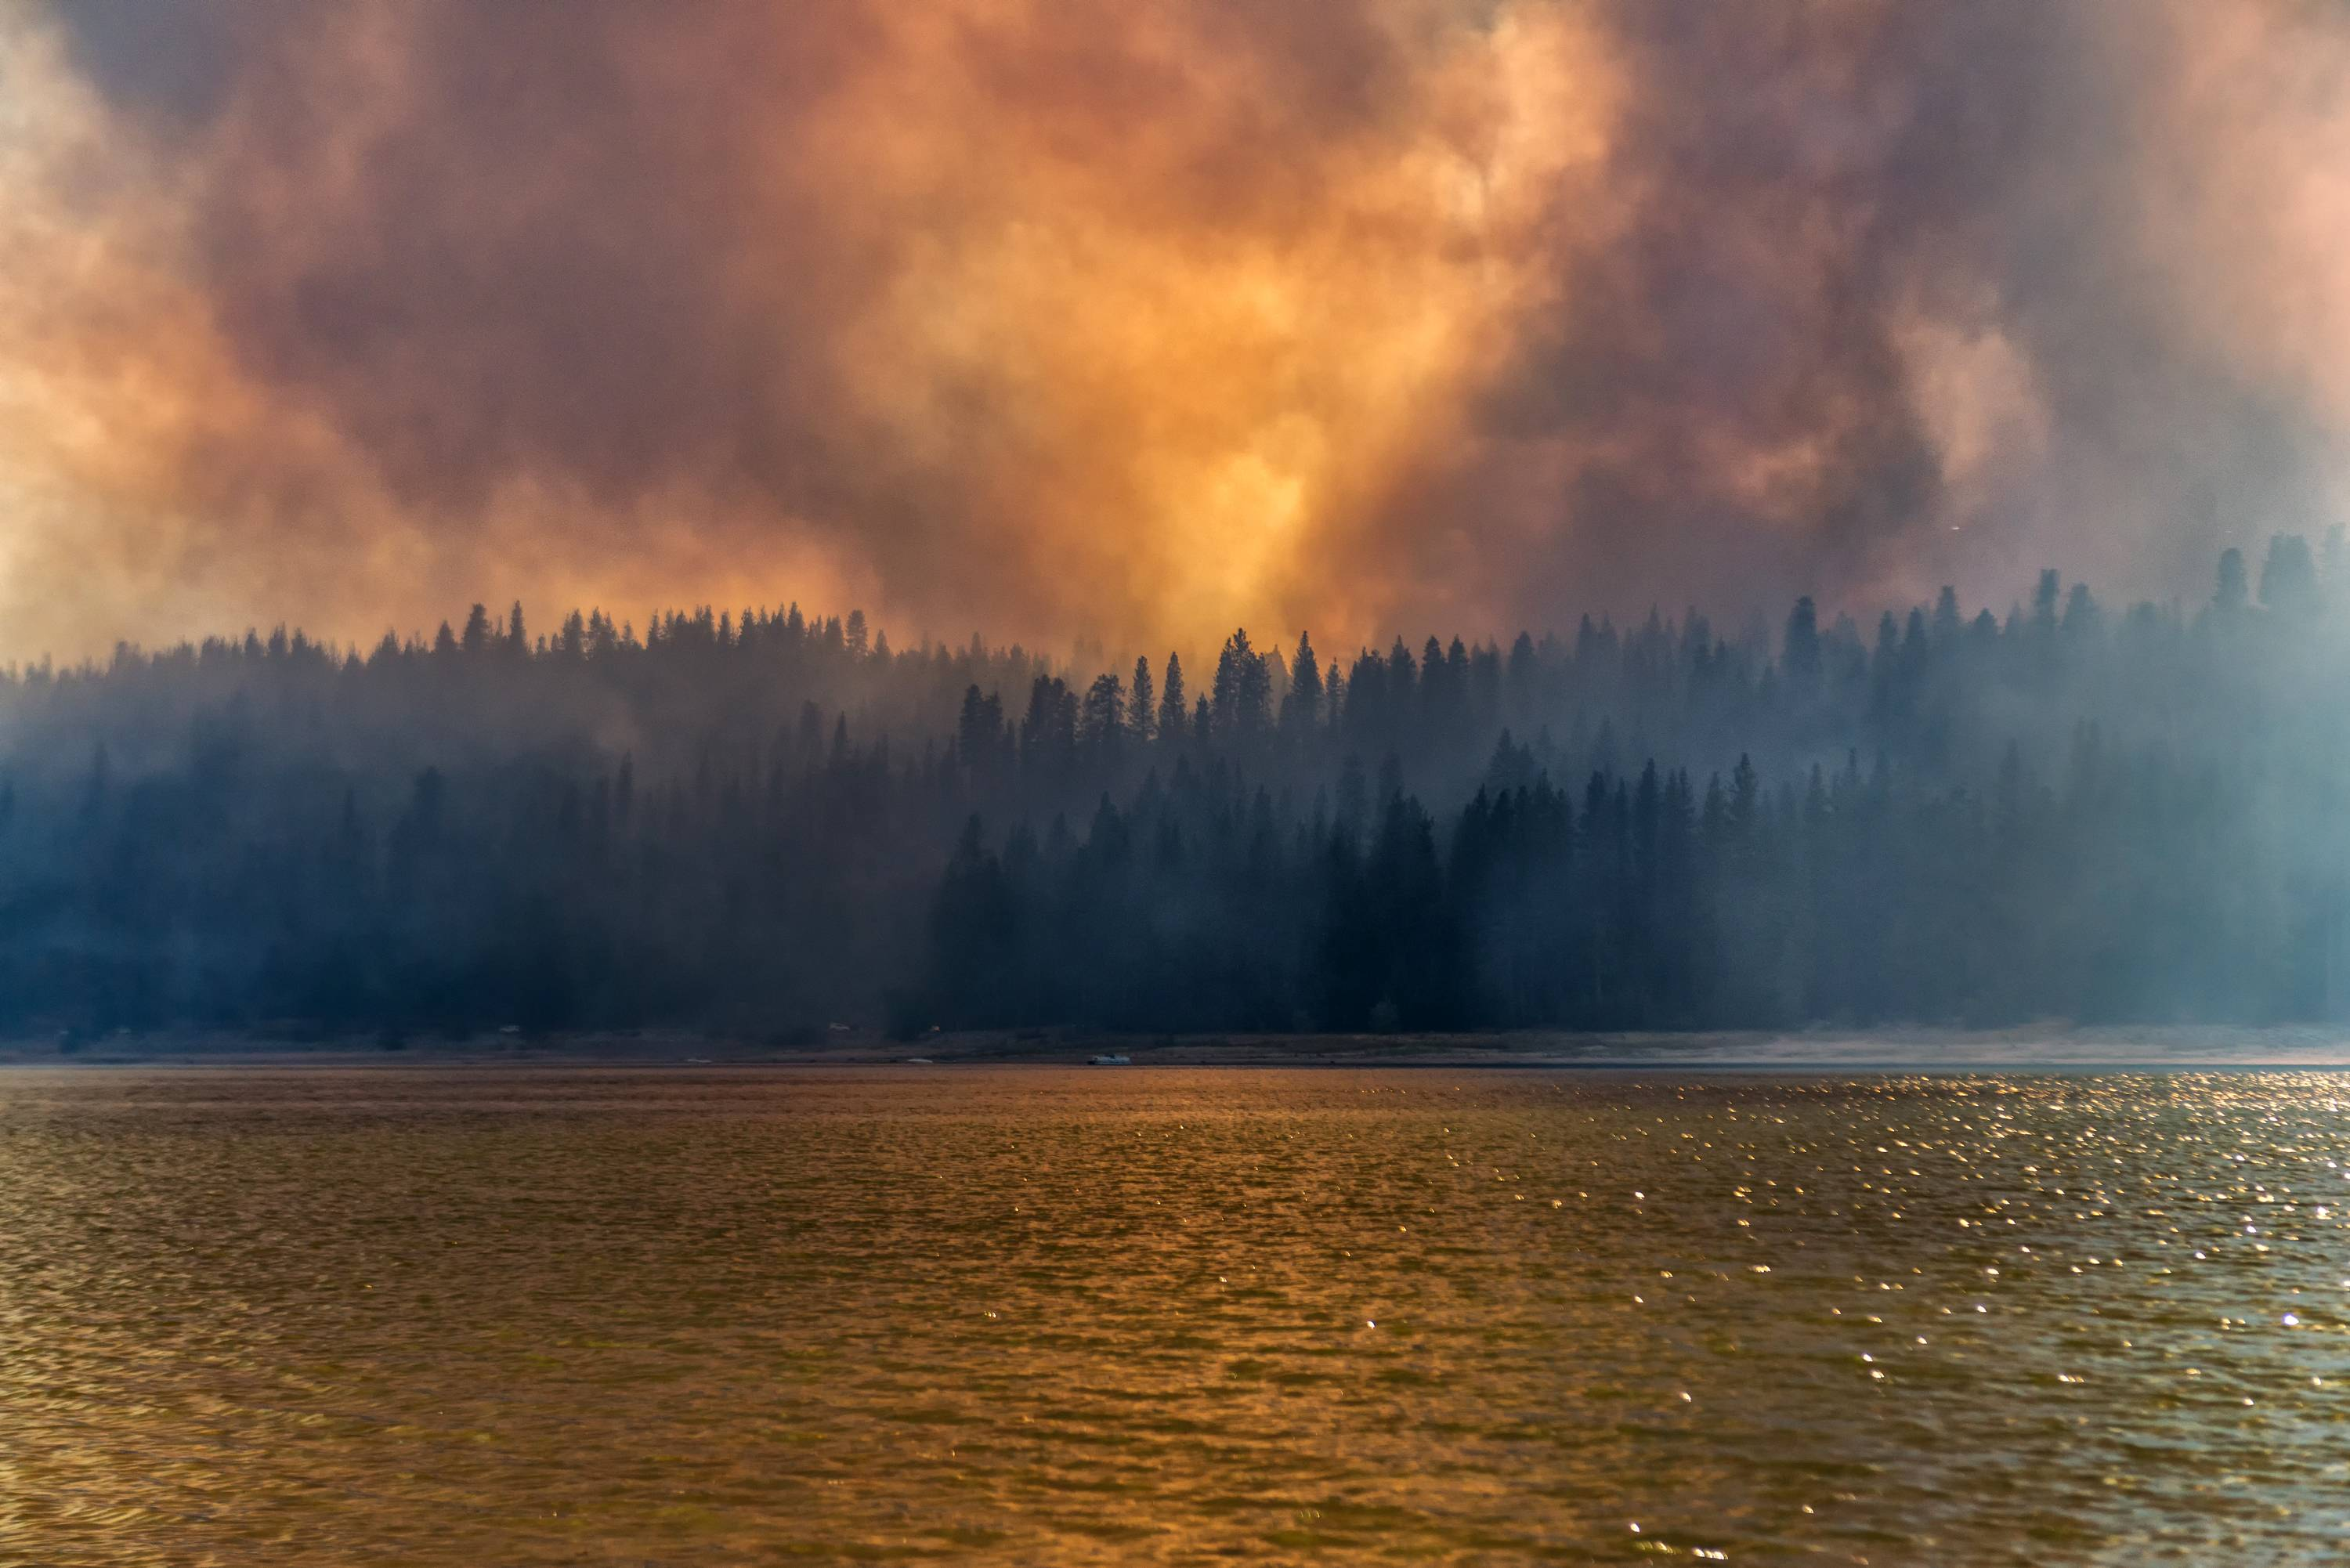 In this Sunday, Sept. 14, 2014 photo provided by YosemiteLandscapes.com, large plumes of smoke from a wildfire rise over Bass Lake, Calif. Crews attempted to get better access to two raging wildfires in California Monday that have forced hundreds to evacuate their homes. (AP Photo/YosemiteLandscapes.com, Darvin Atkeson)